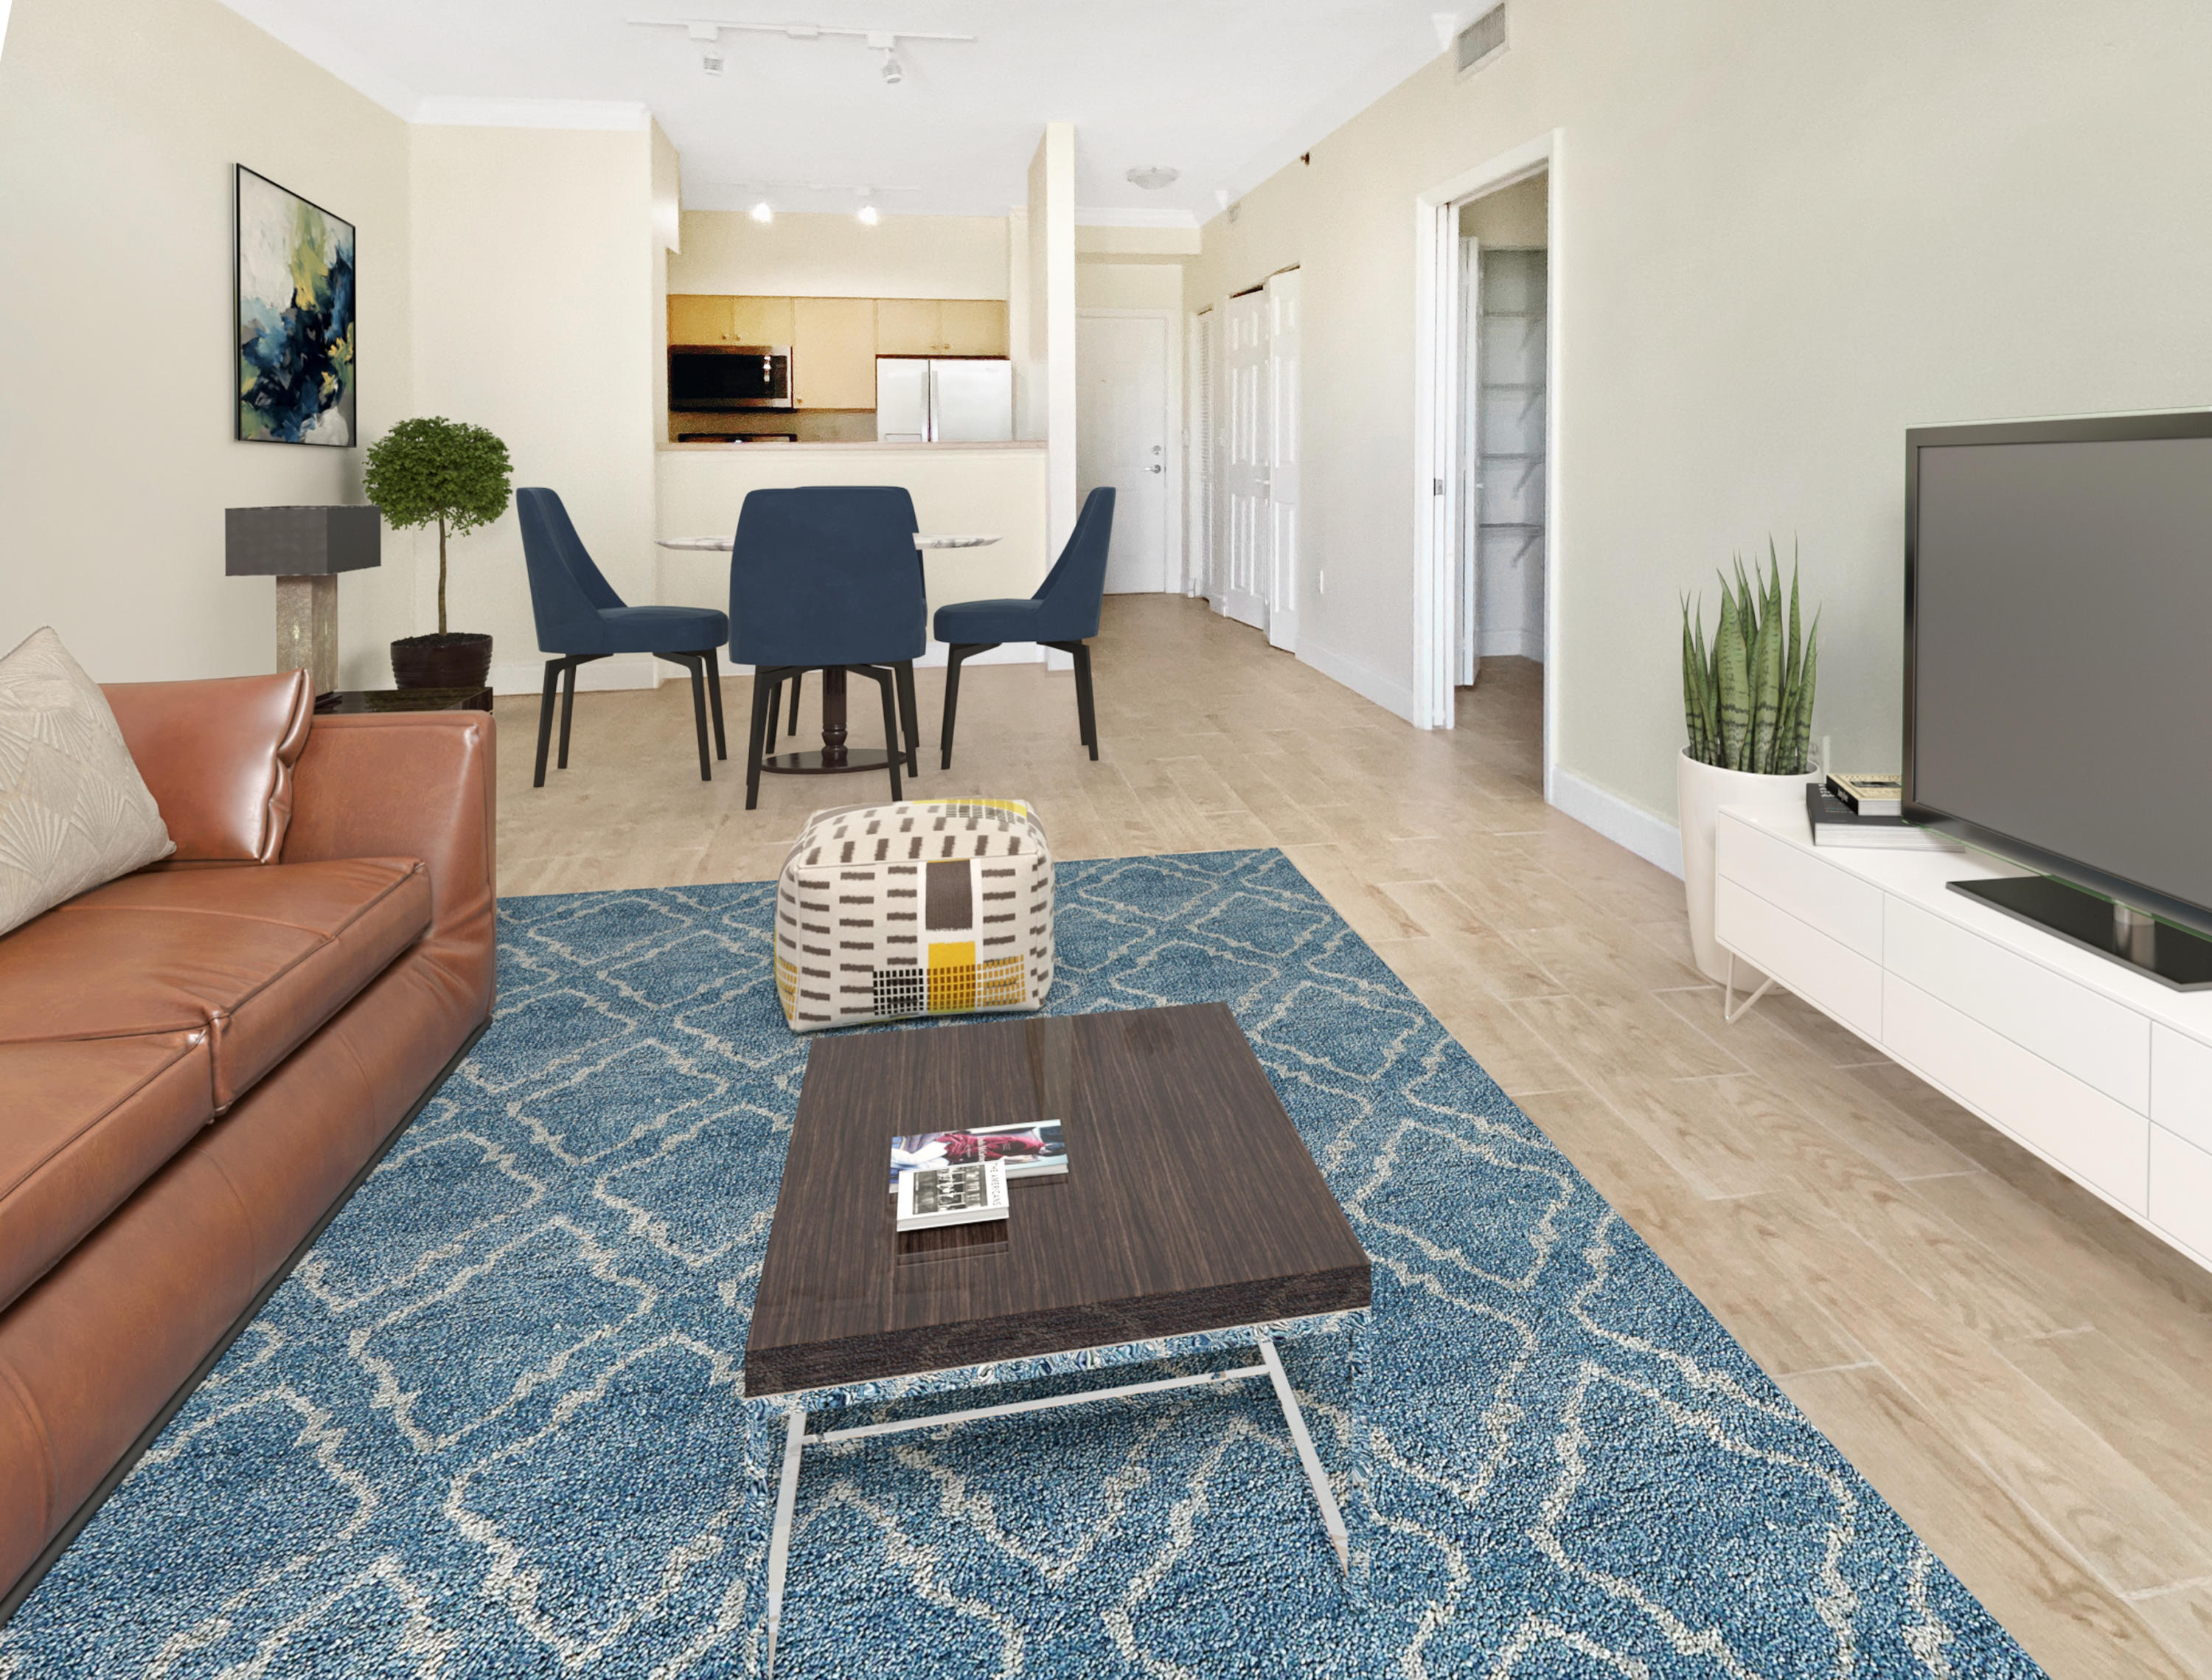 616 Clearwater Park Road #311 - 33401 - FL - West Palm Beach